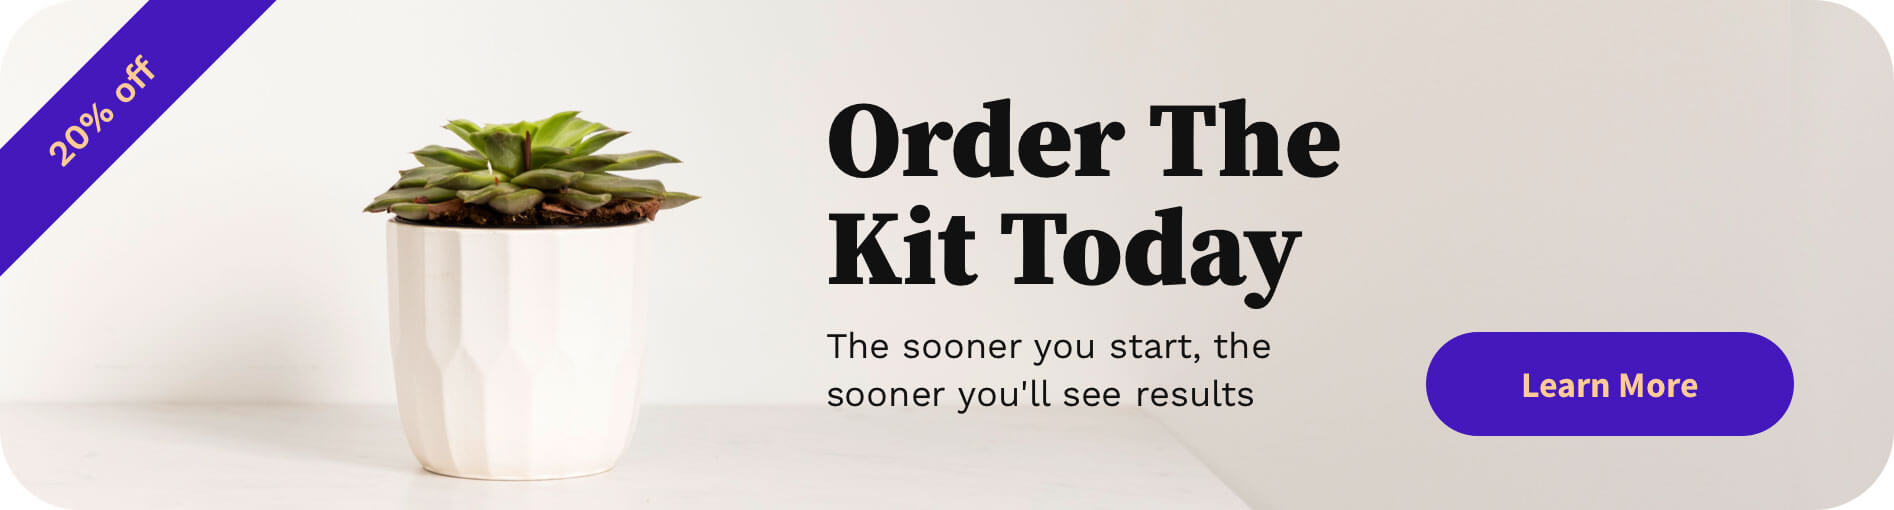 "A banner depicting a succulent plant, with the words: ""Order The Kit Today, the sooner you start, the sooner you'll see results"" and a 20 percent off sign in the corner"